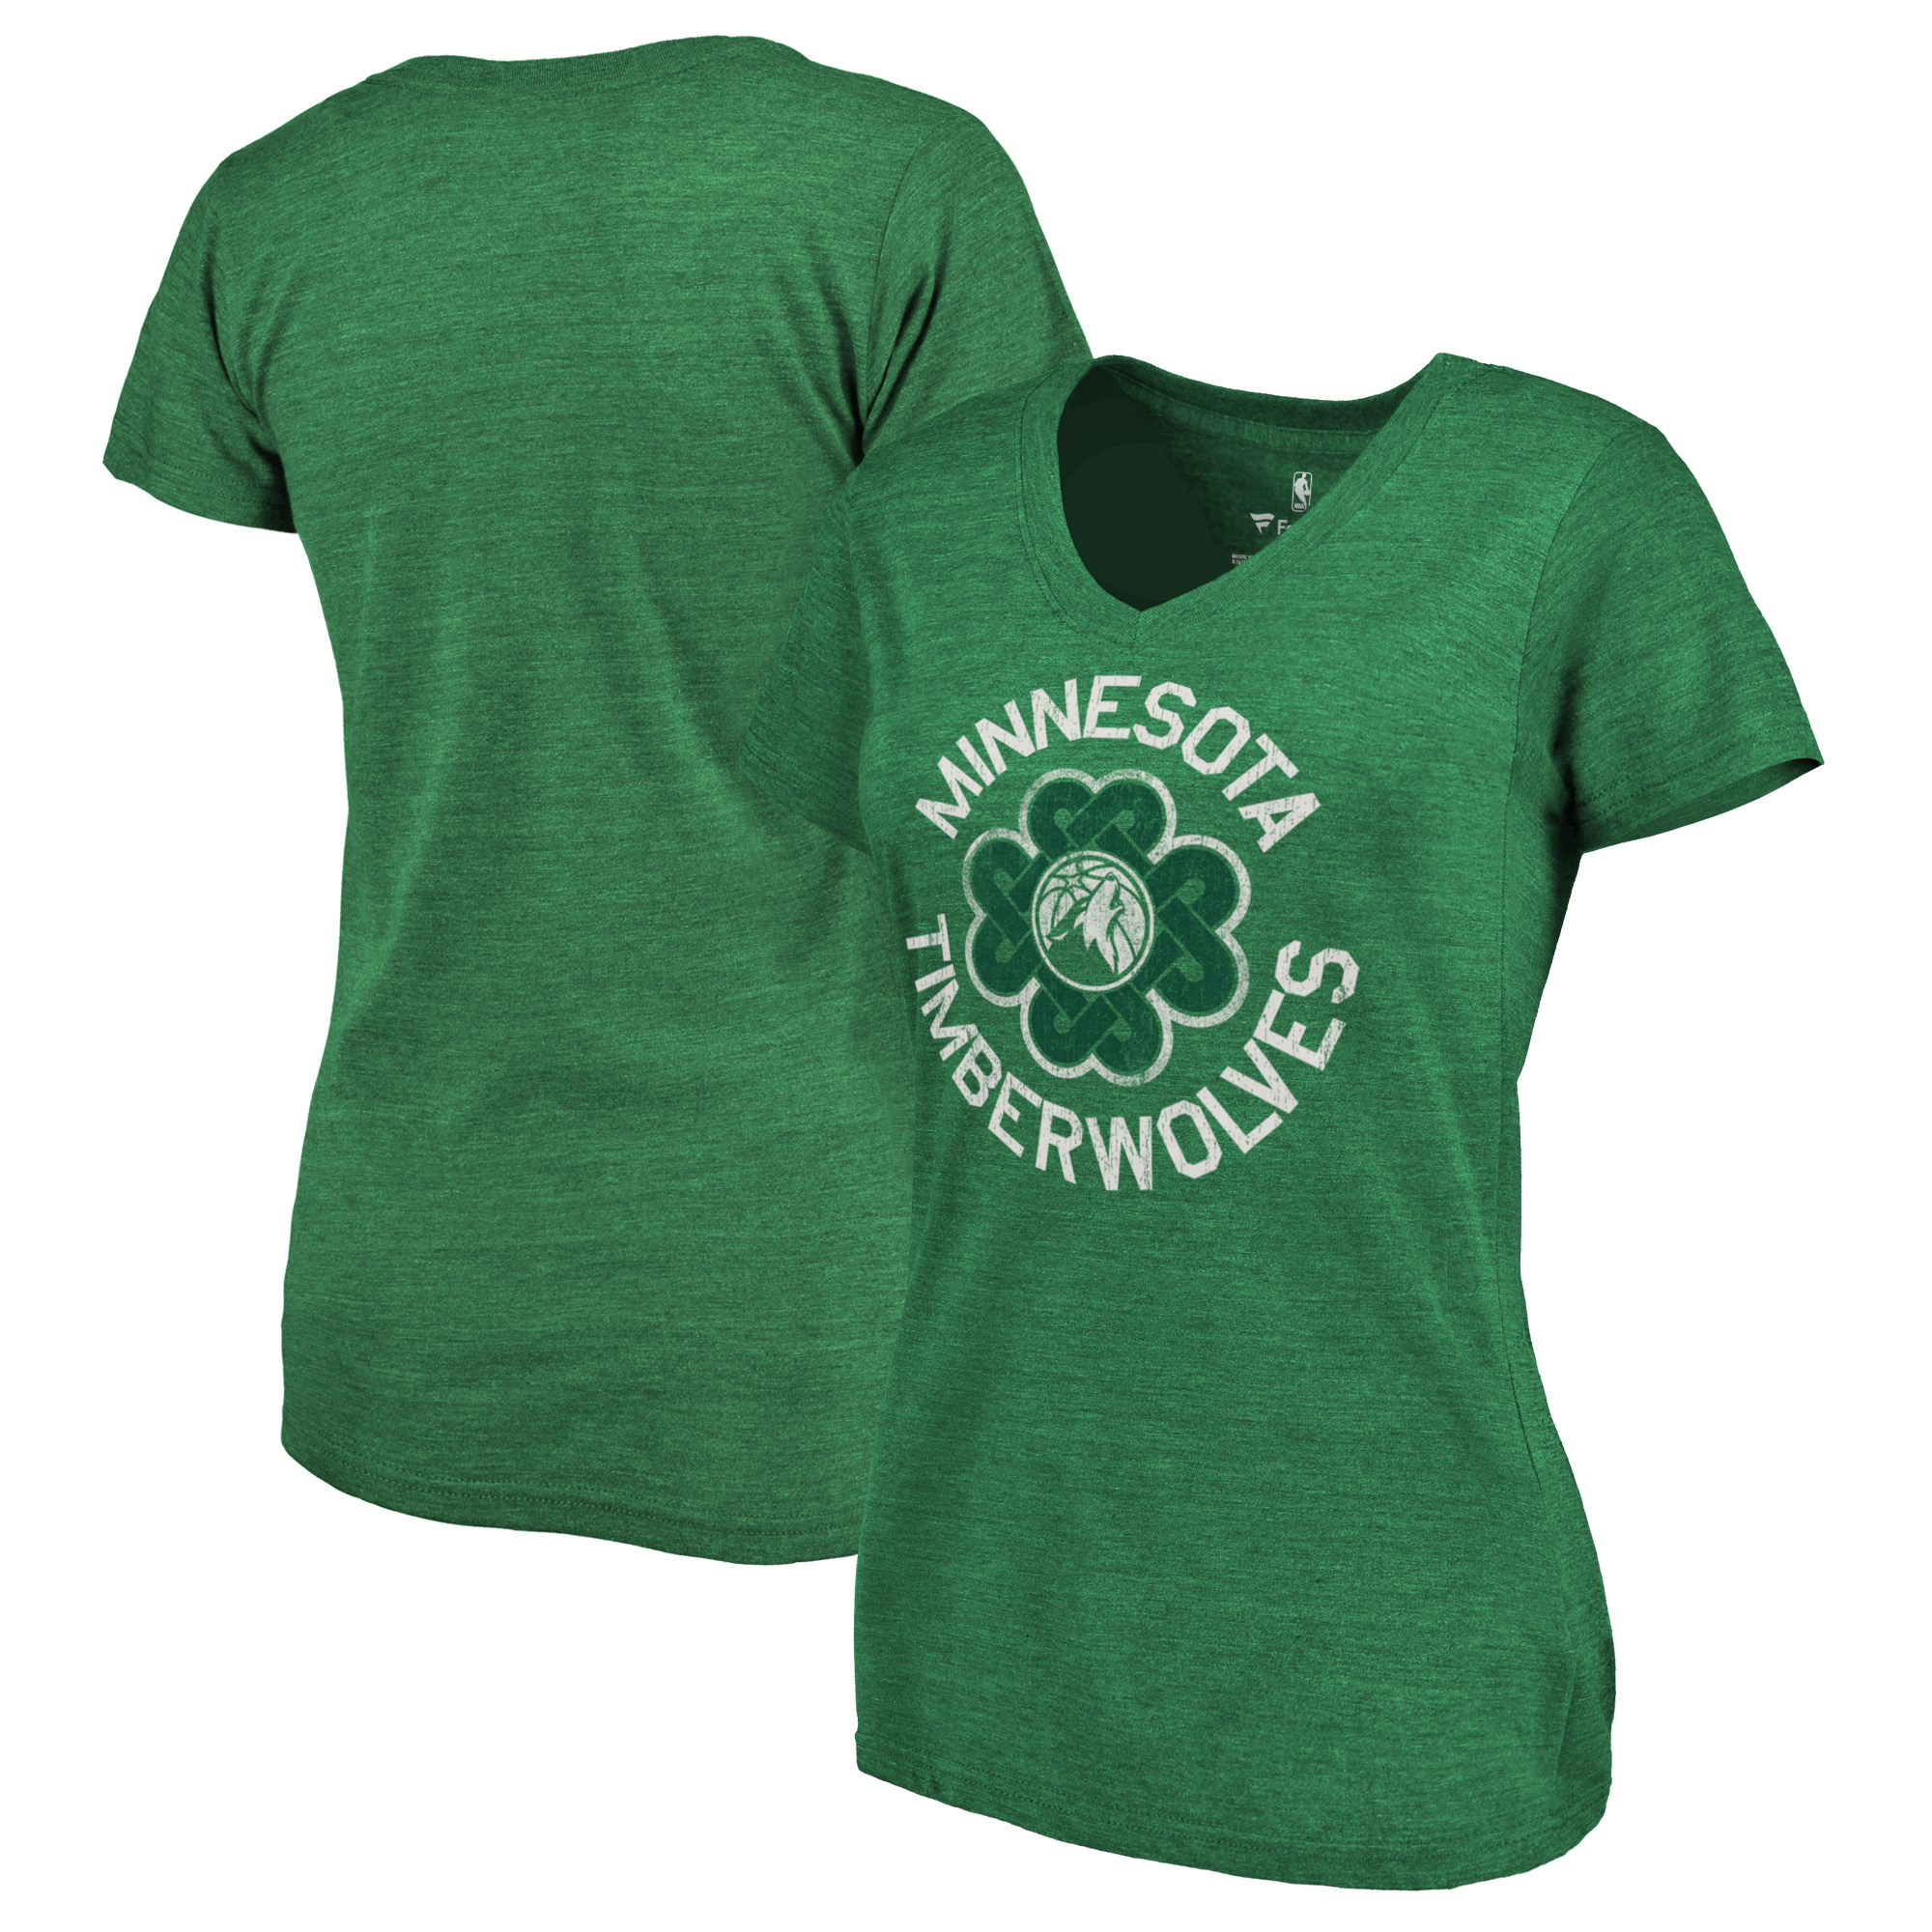 Minnesota Timberwolves Fanatics Branded Women's St. Patrick's Day Luck Tradition Tri-Blend V-Neck T-Shirt - Green